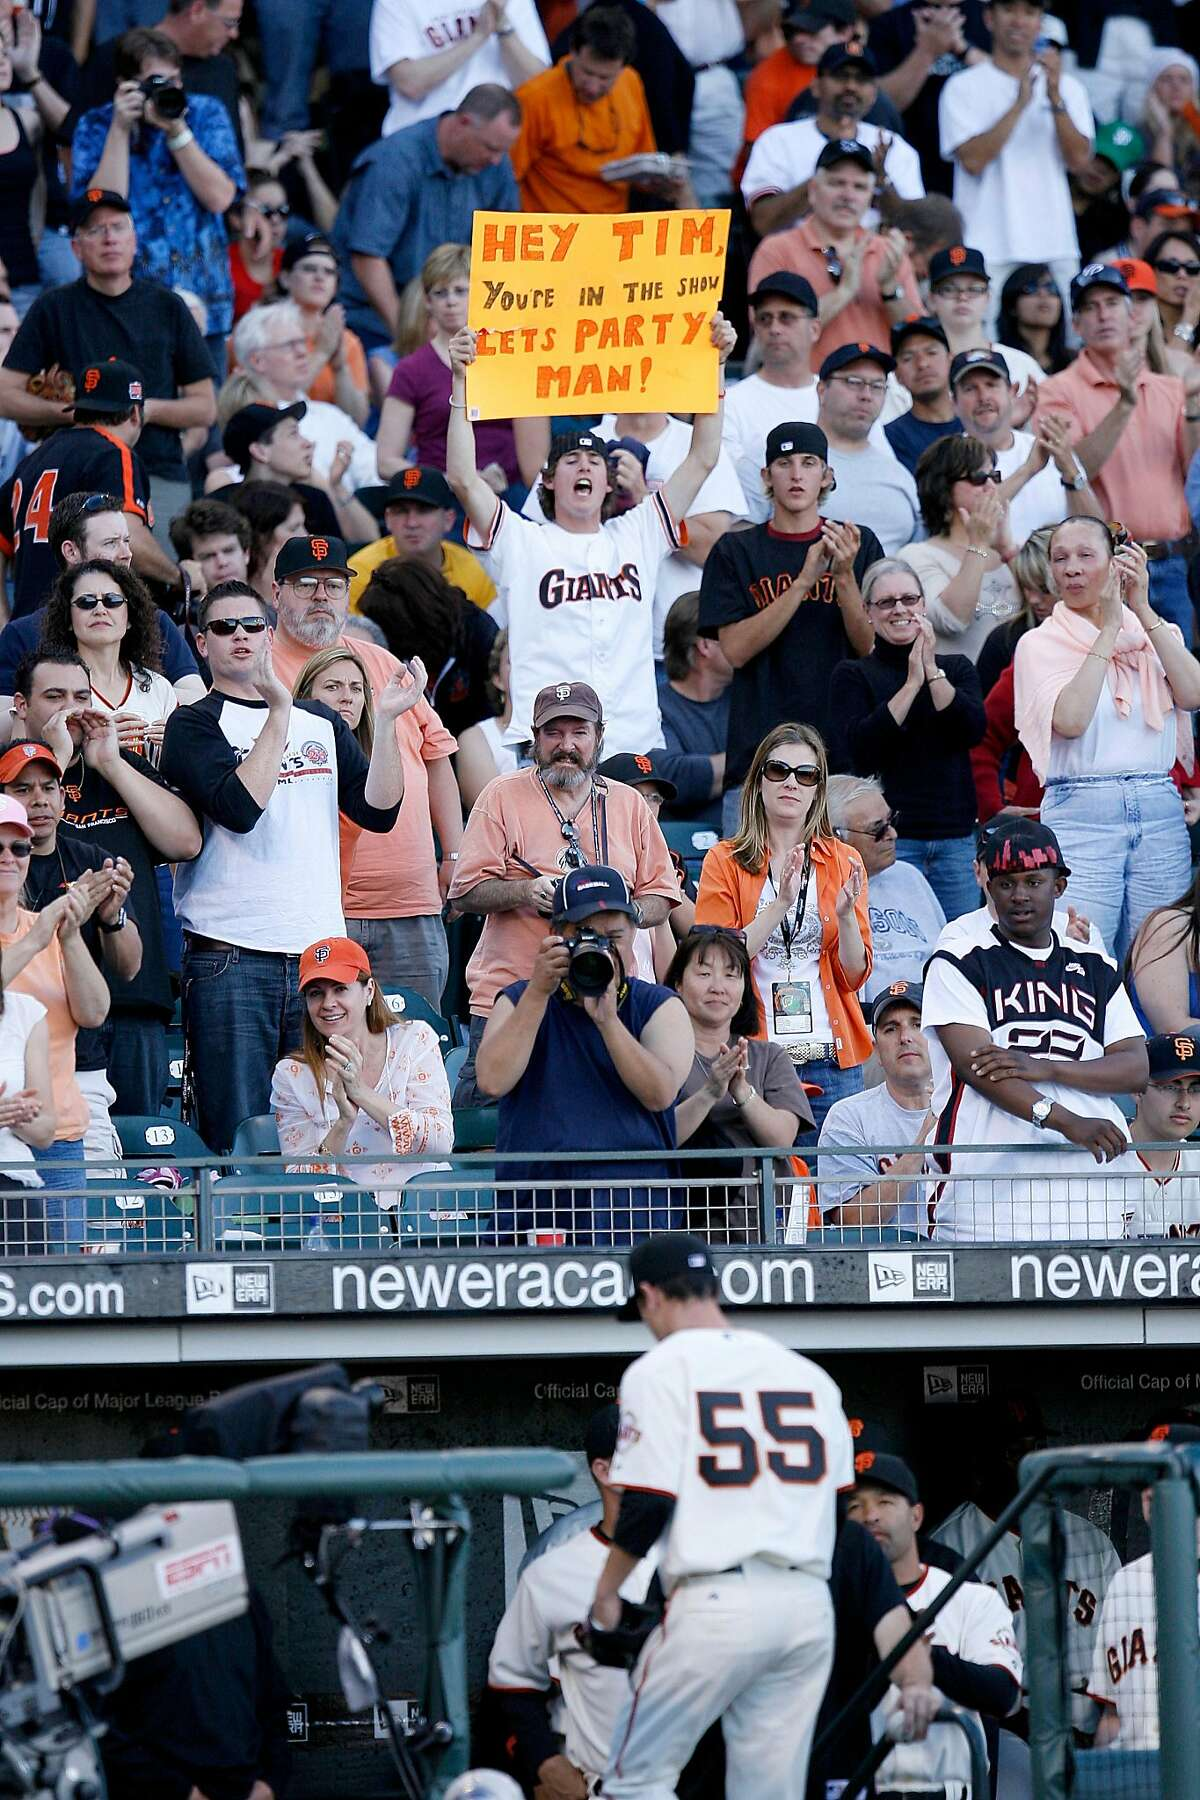 A fan encourages Giants young pitcher Tim Lincecum as he leaves the mound in the fifth inning against Philadelphia Phillies, Sunday May 6,2007, in San Francisco.(Lacy Atkins San Francisco Chronicle)